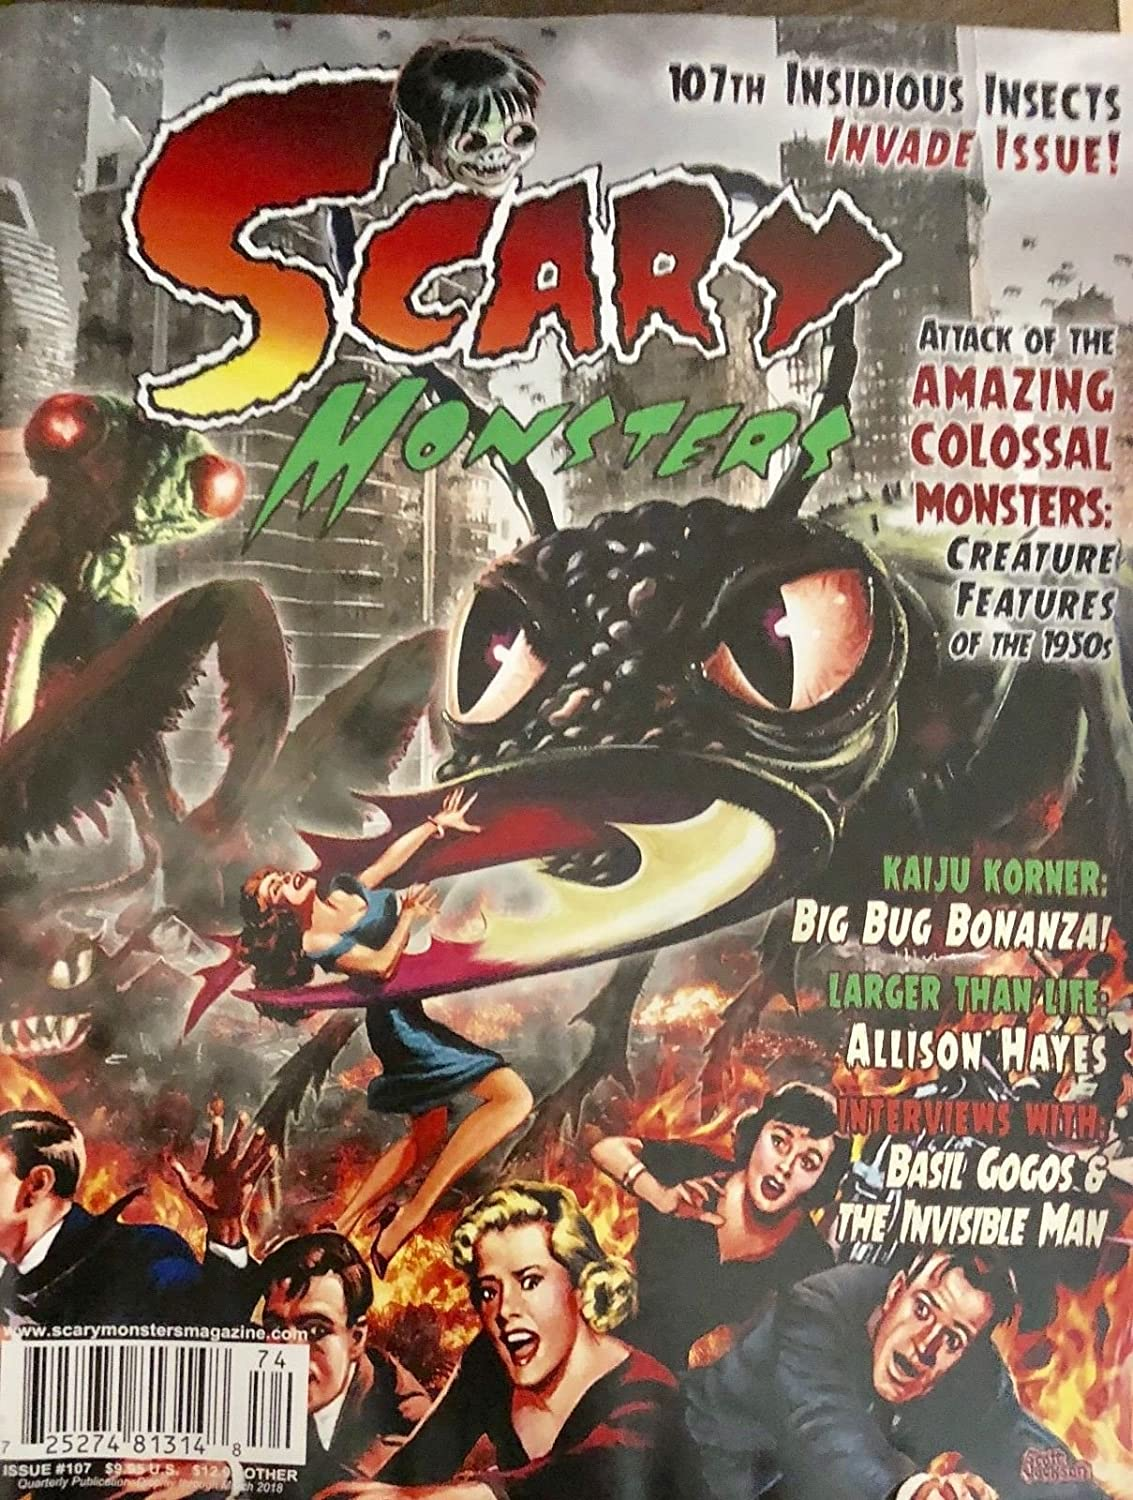 SCARY MONSTERS ISSUE 107 2018** s3457